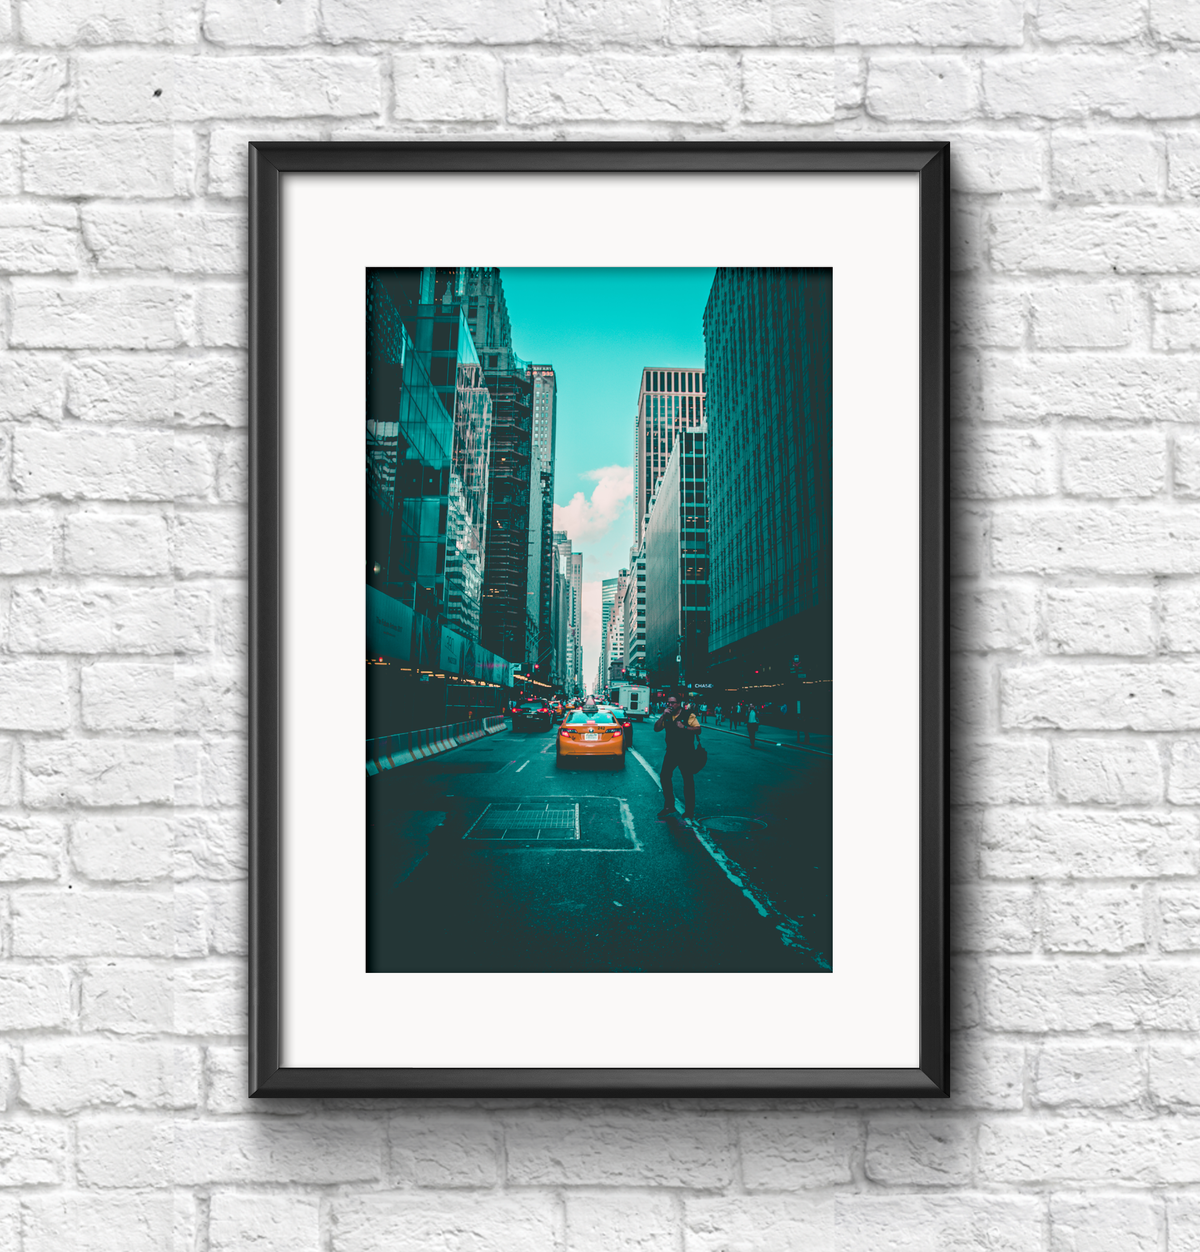 Image of New York City streets